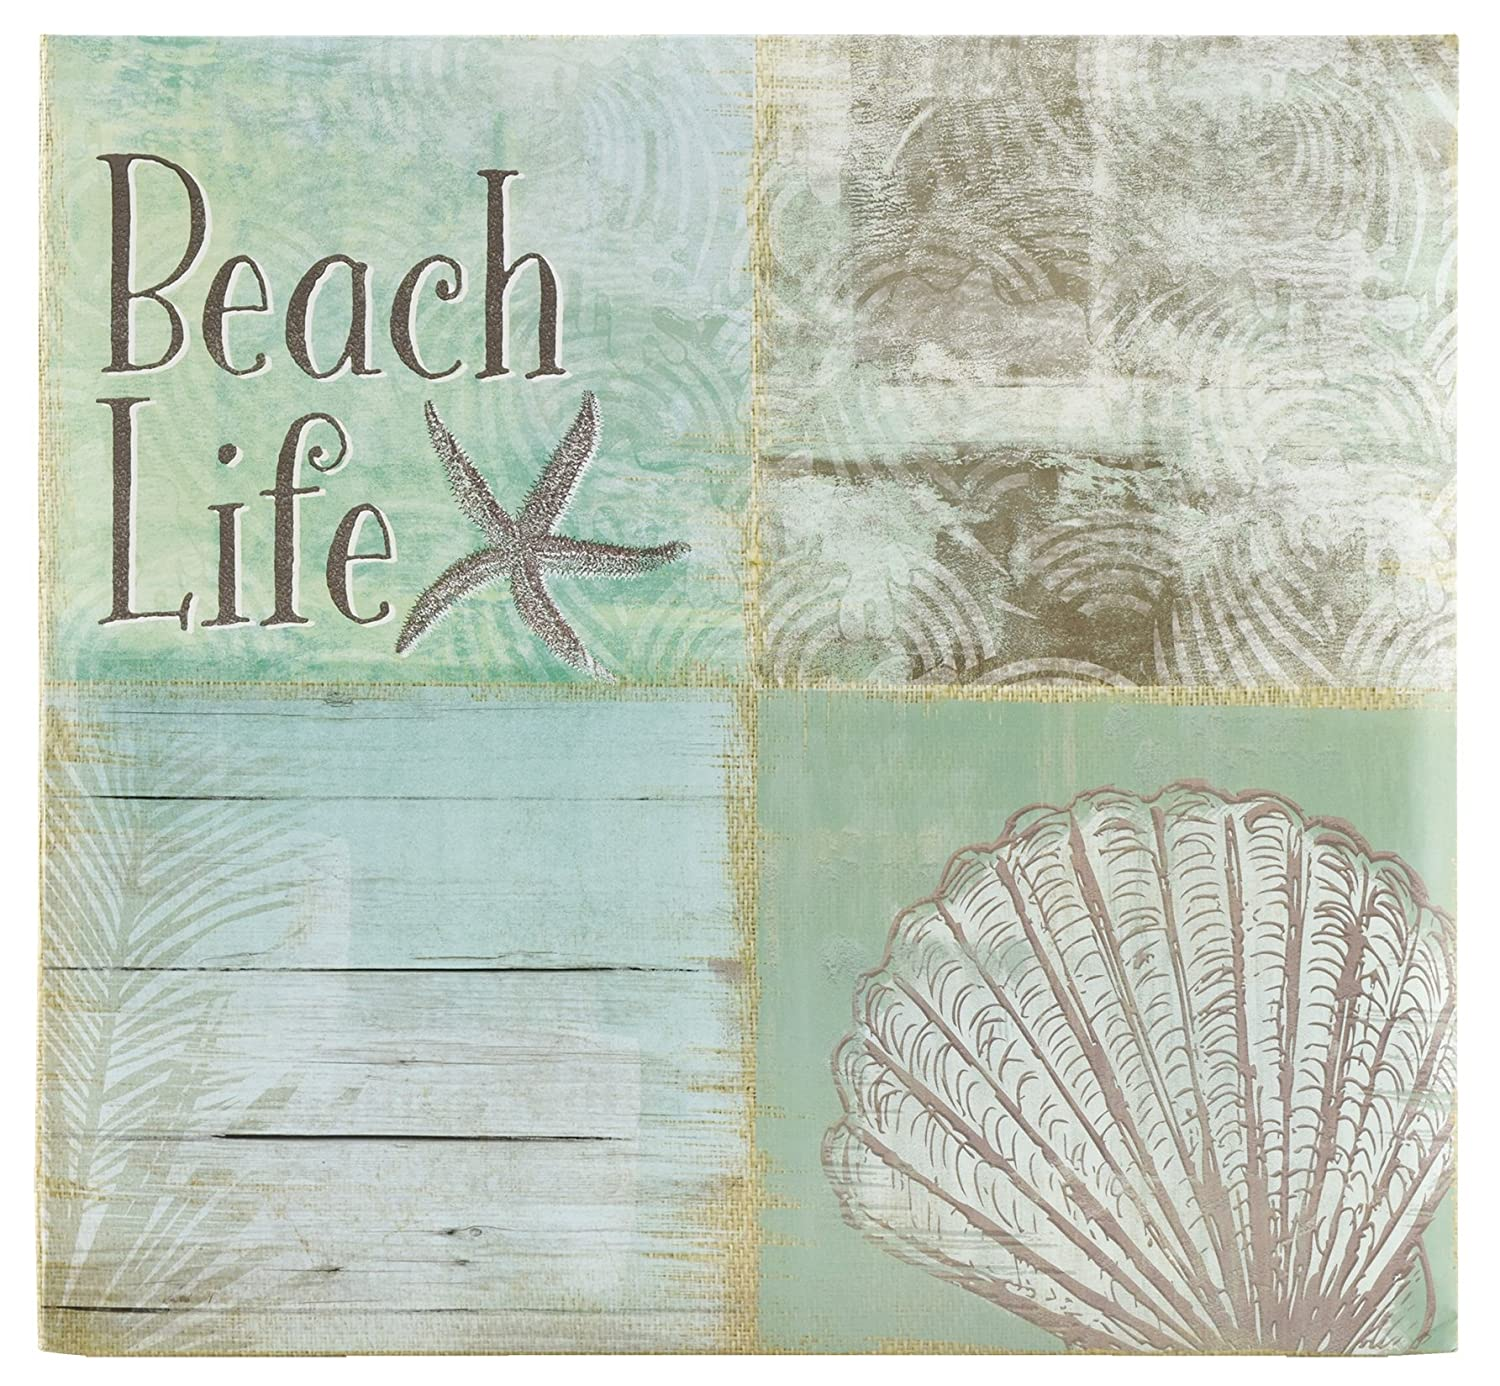 MCS MBI 13.5x12.5 Inch Beach Life Theme Scrapbook Album with 12x12 Inch Pages (860121) MCS Industries